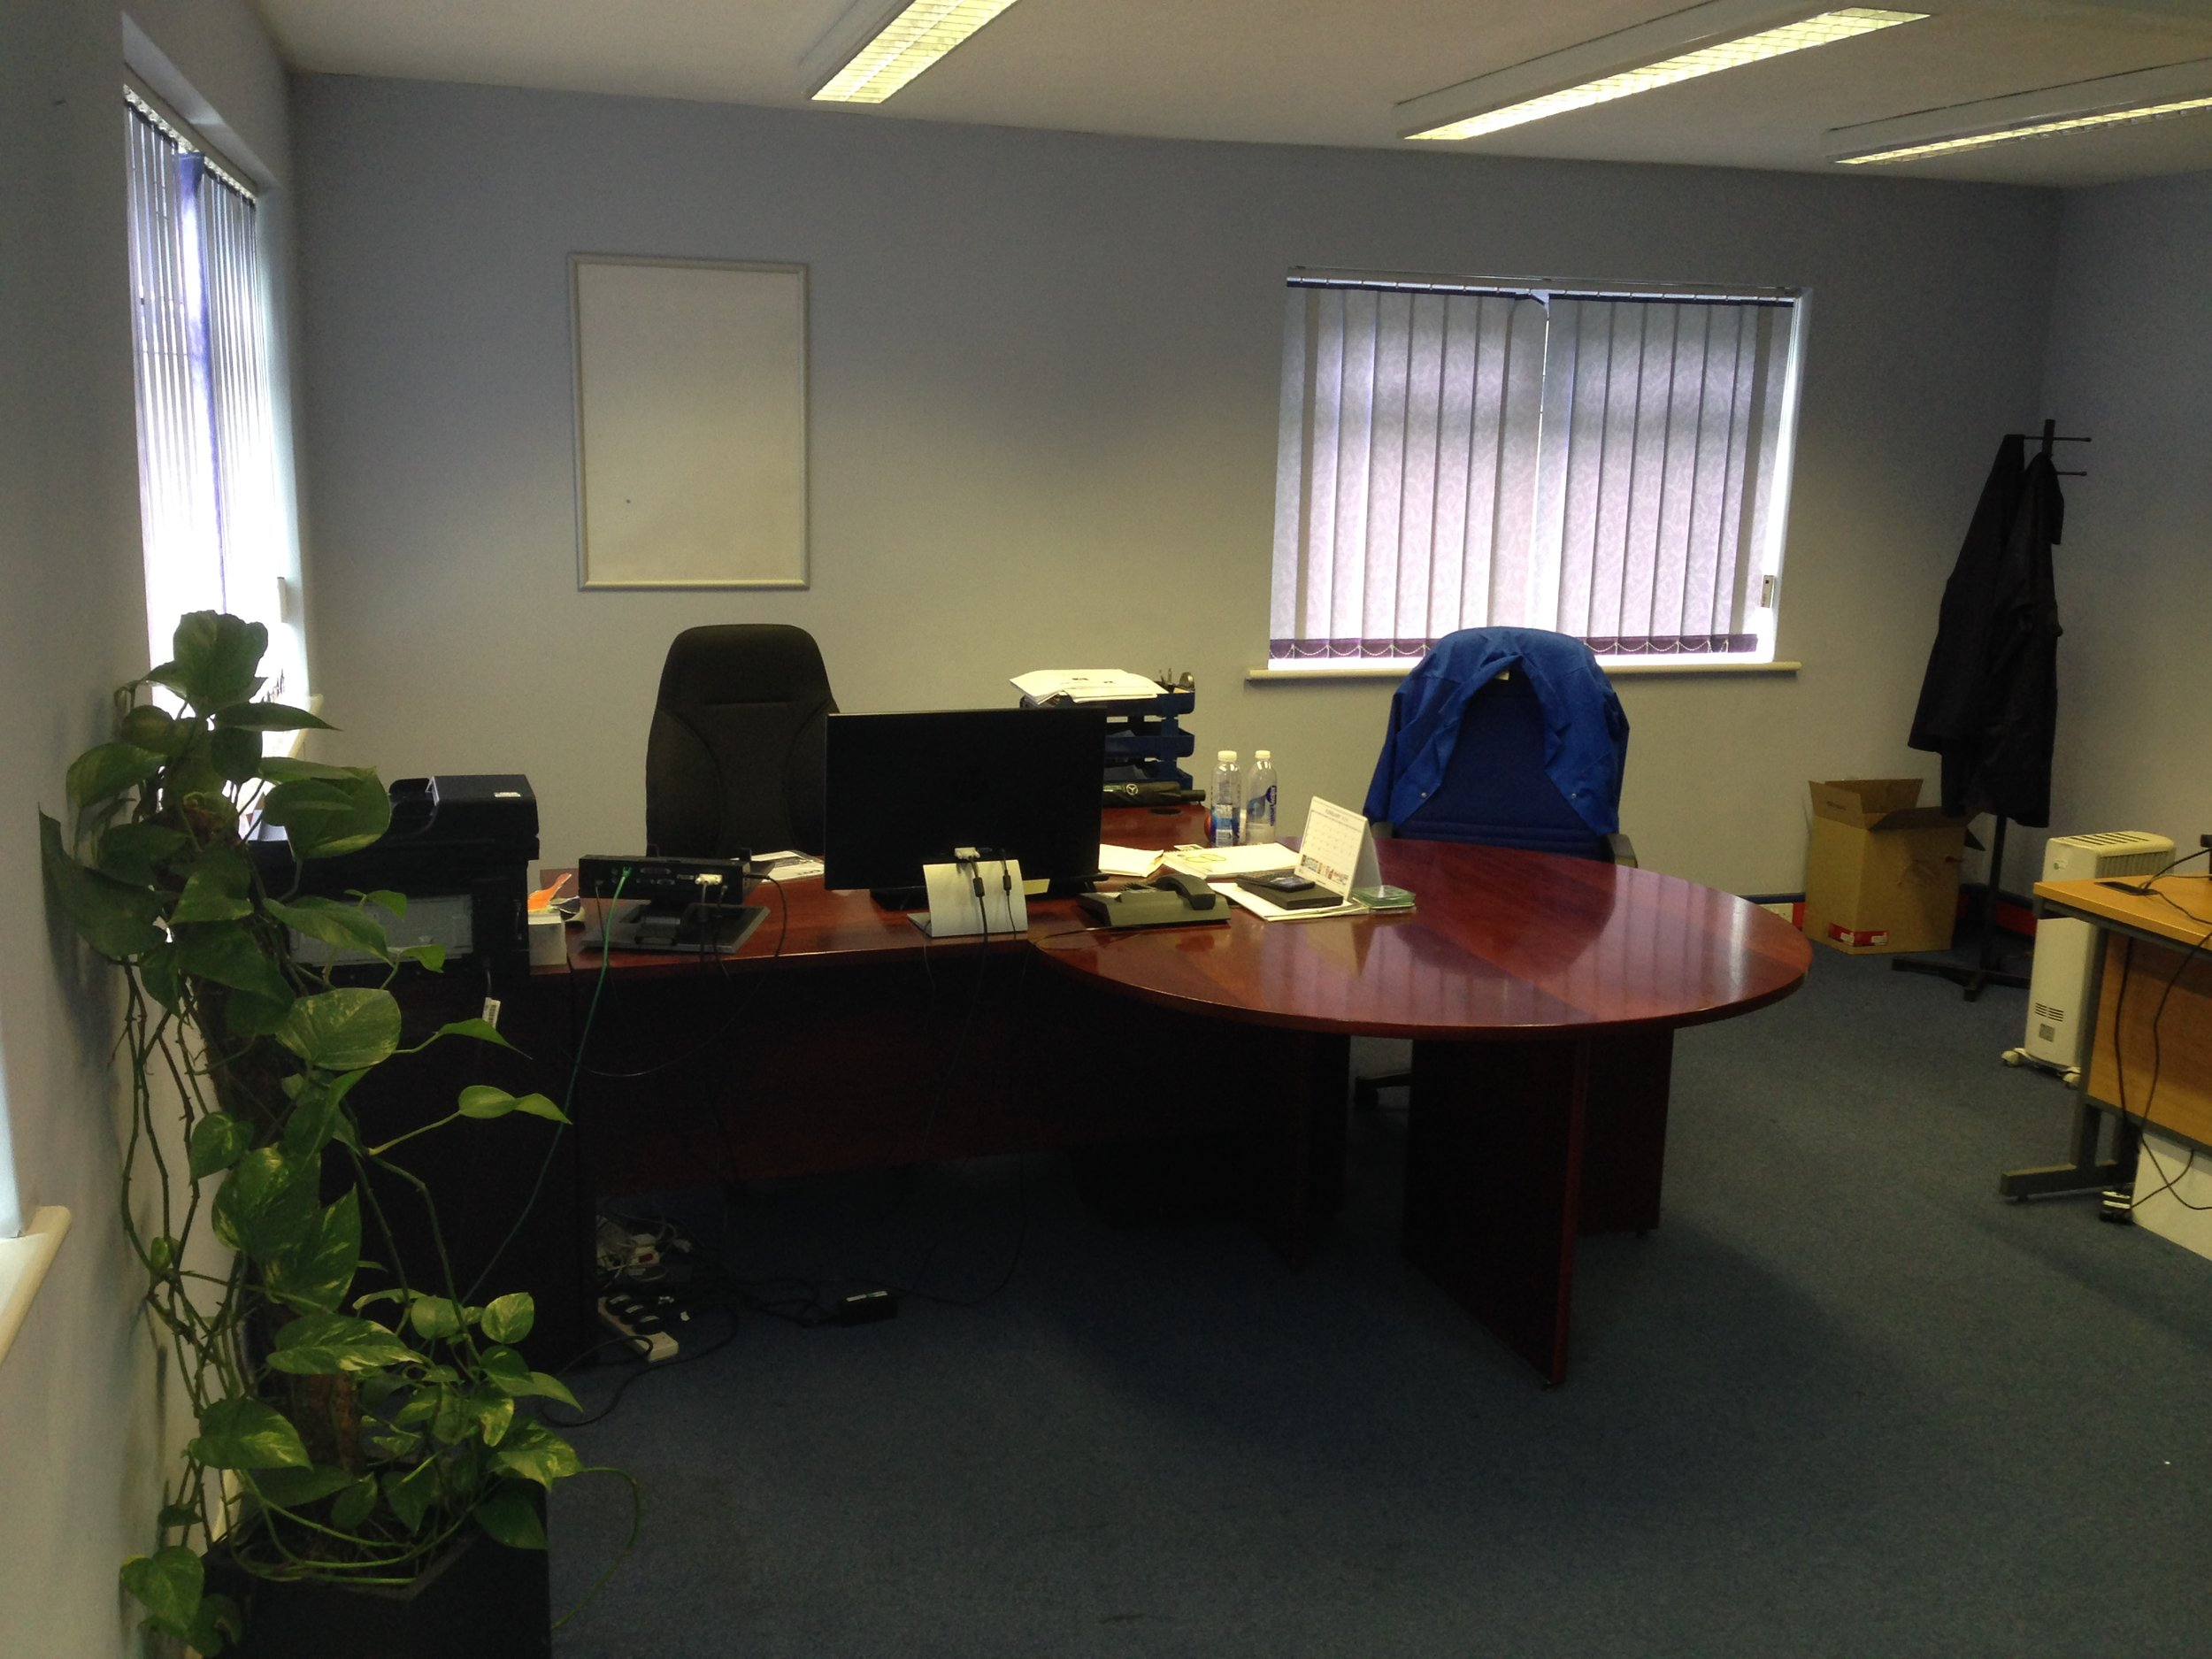 Office remodelling - design and refit - Littlehampton manufacturing sector-15